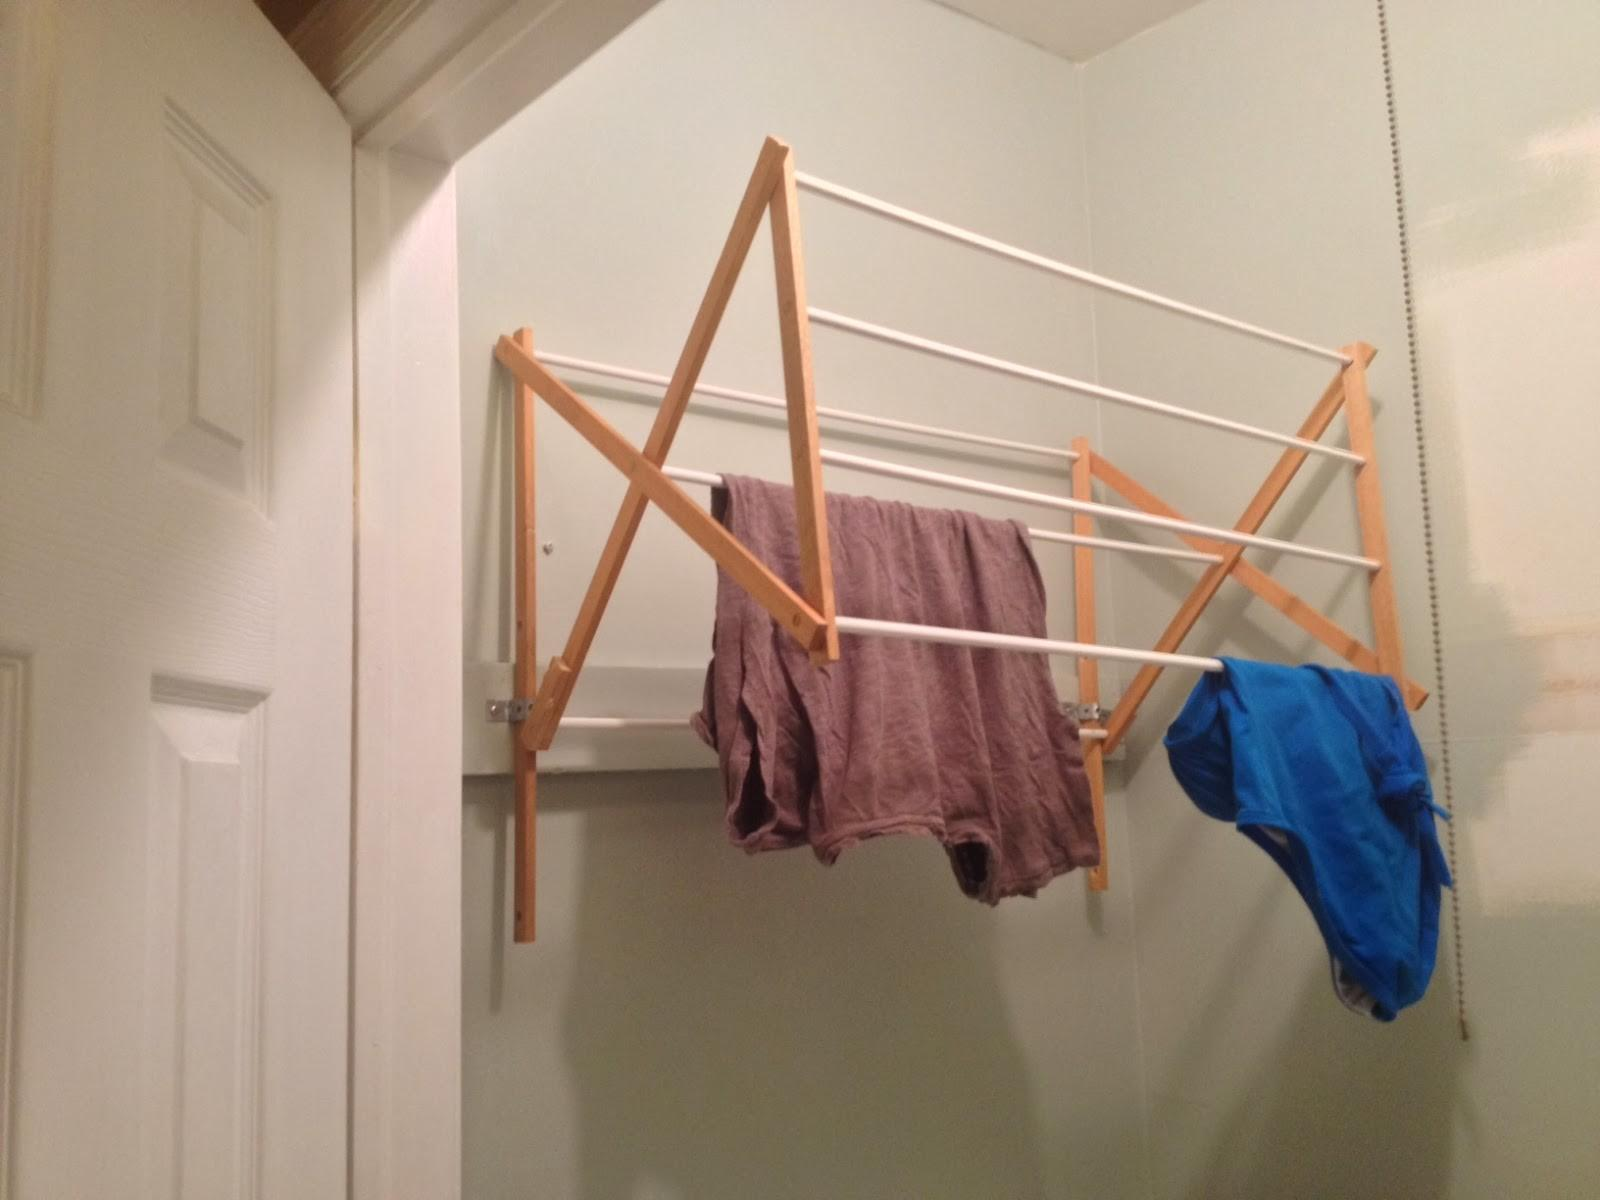 Diy Laundry Drying Racks Small Spaces